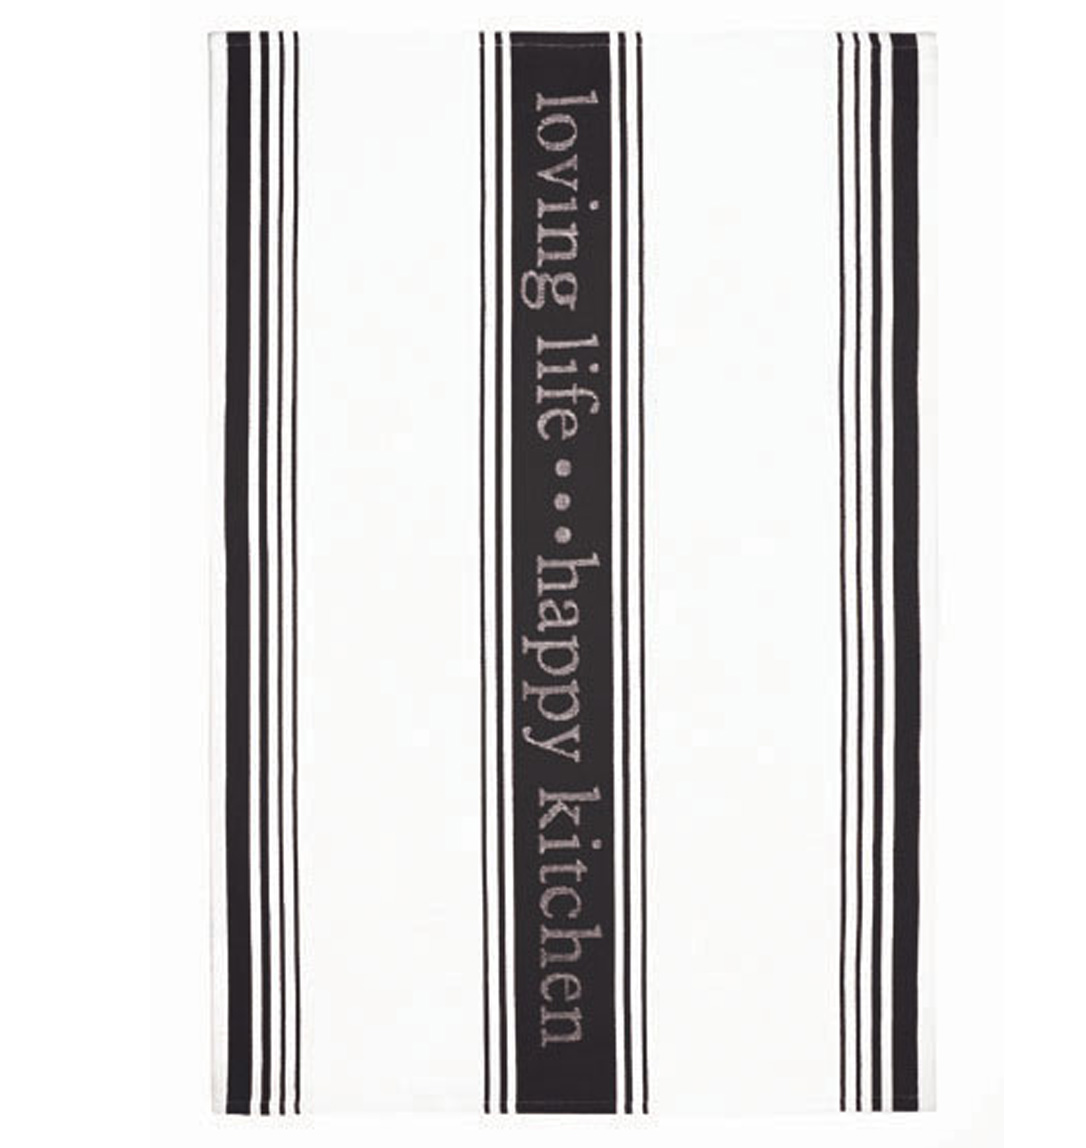 MUkitchen Loving Life 100% Cotton Striped Jacquard Towel 20 by 30-Inches Onyx